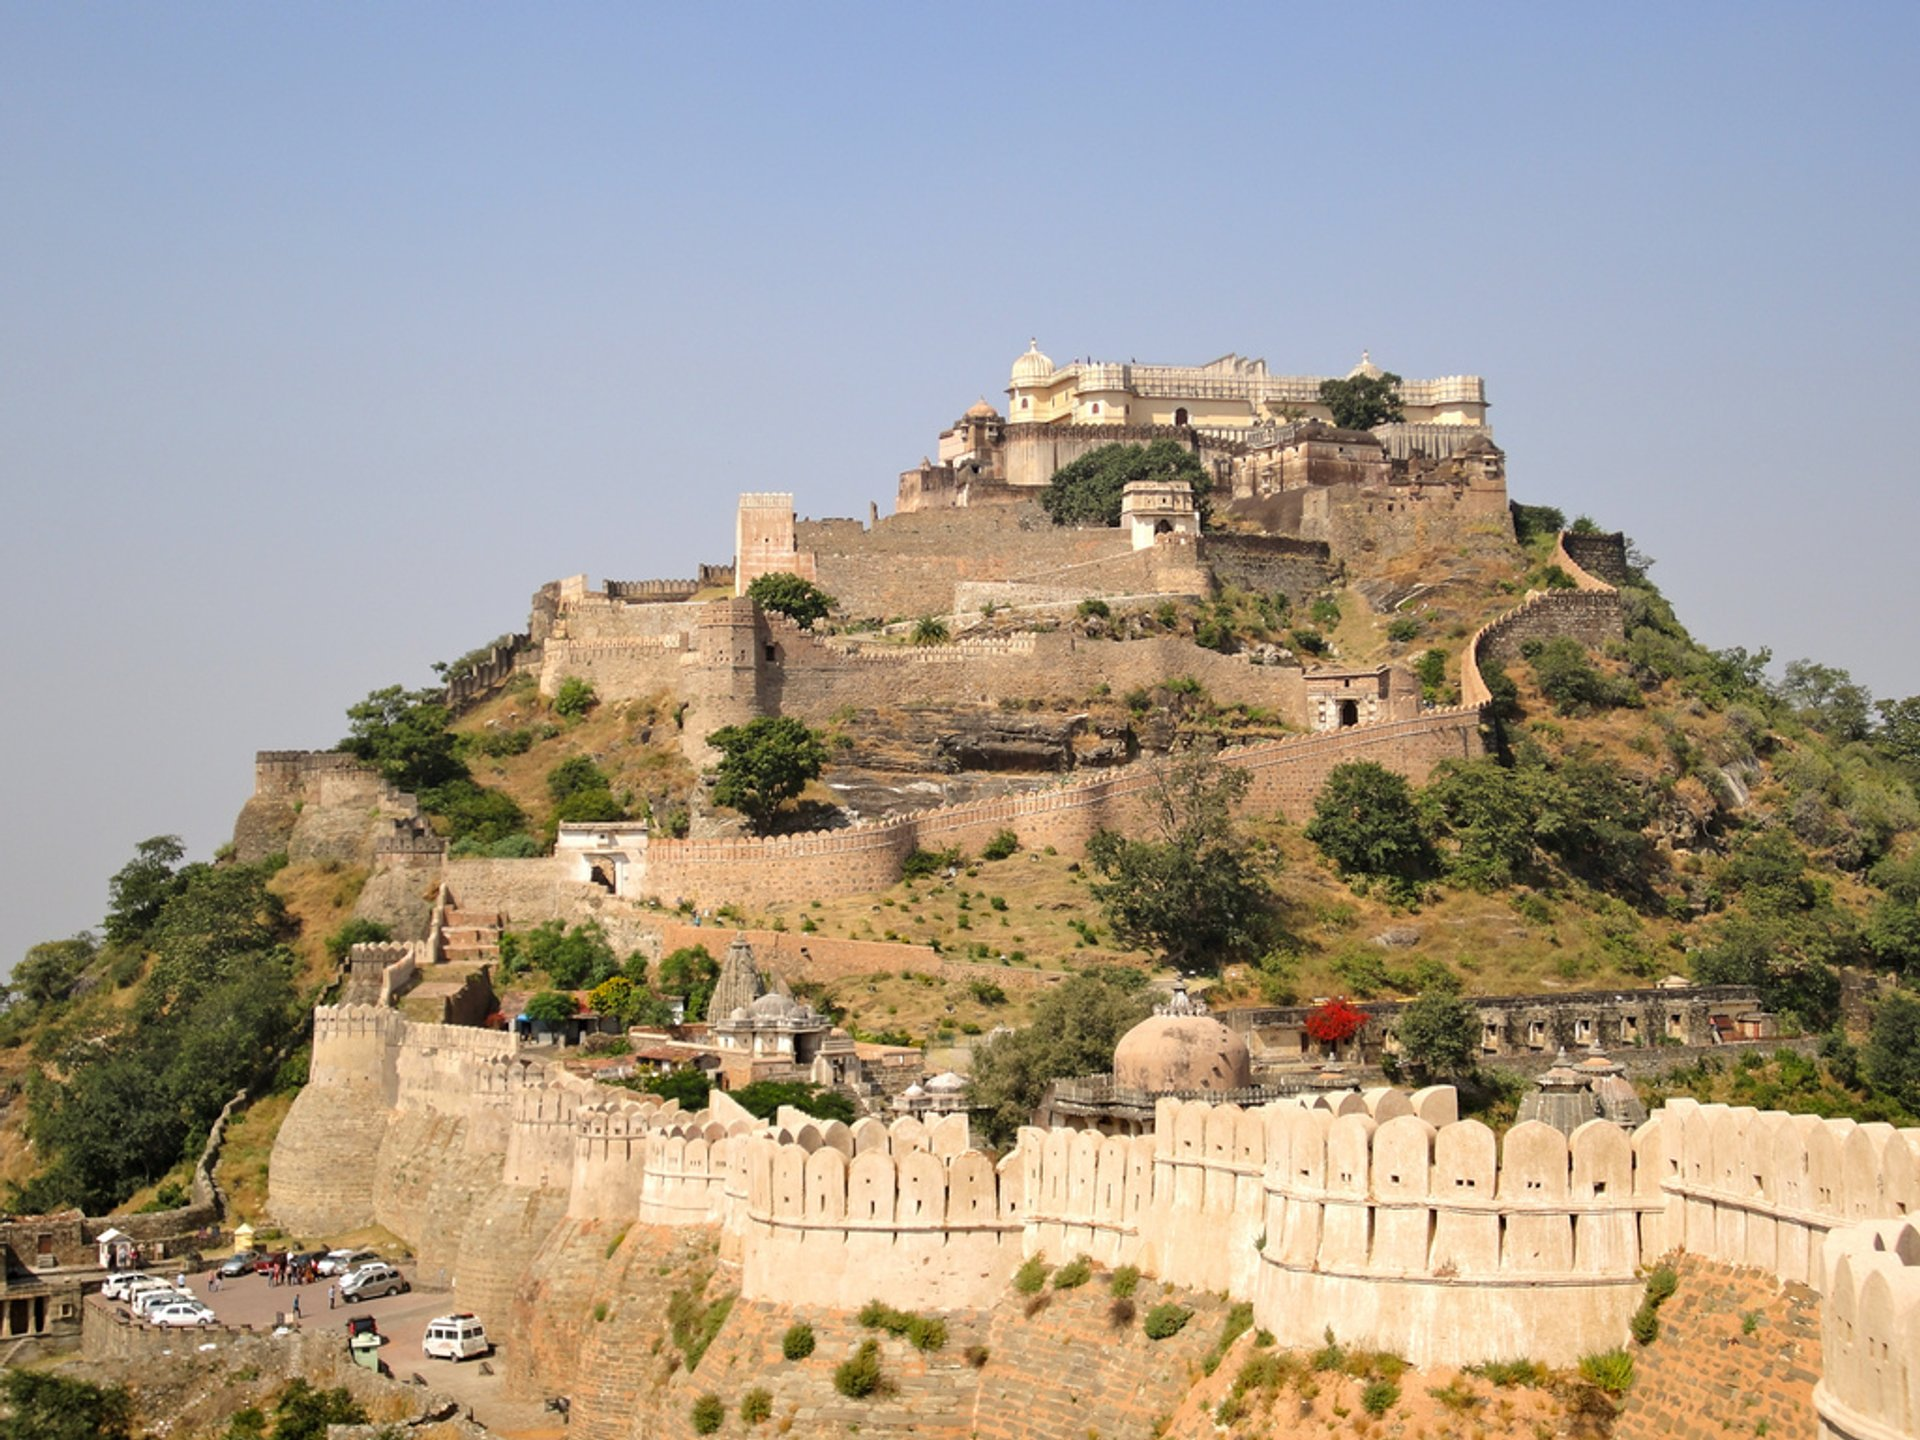 Kumbhalgarh Fort (The Great Wall of India) in India - Best Season 2020